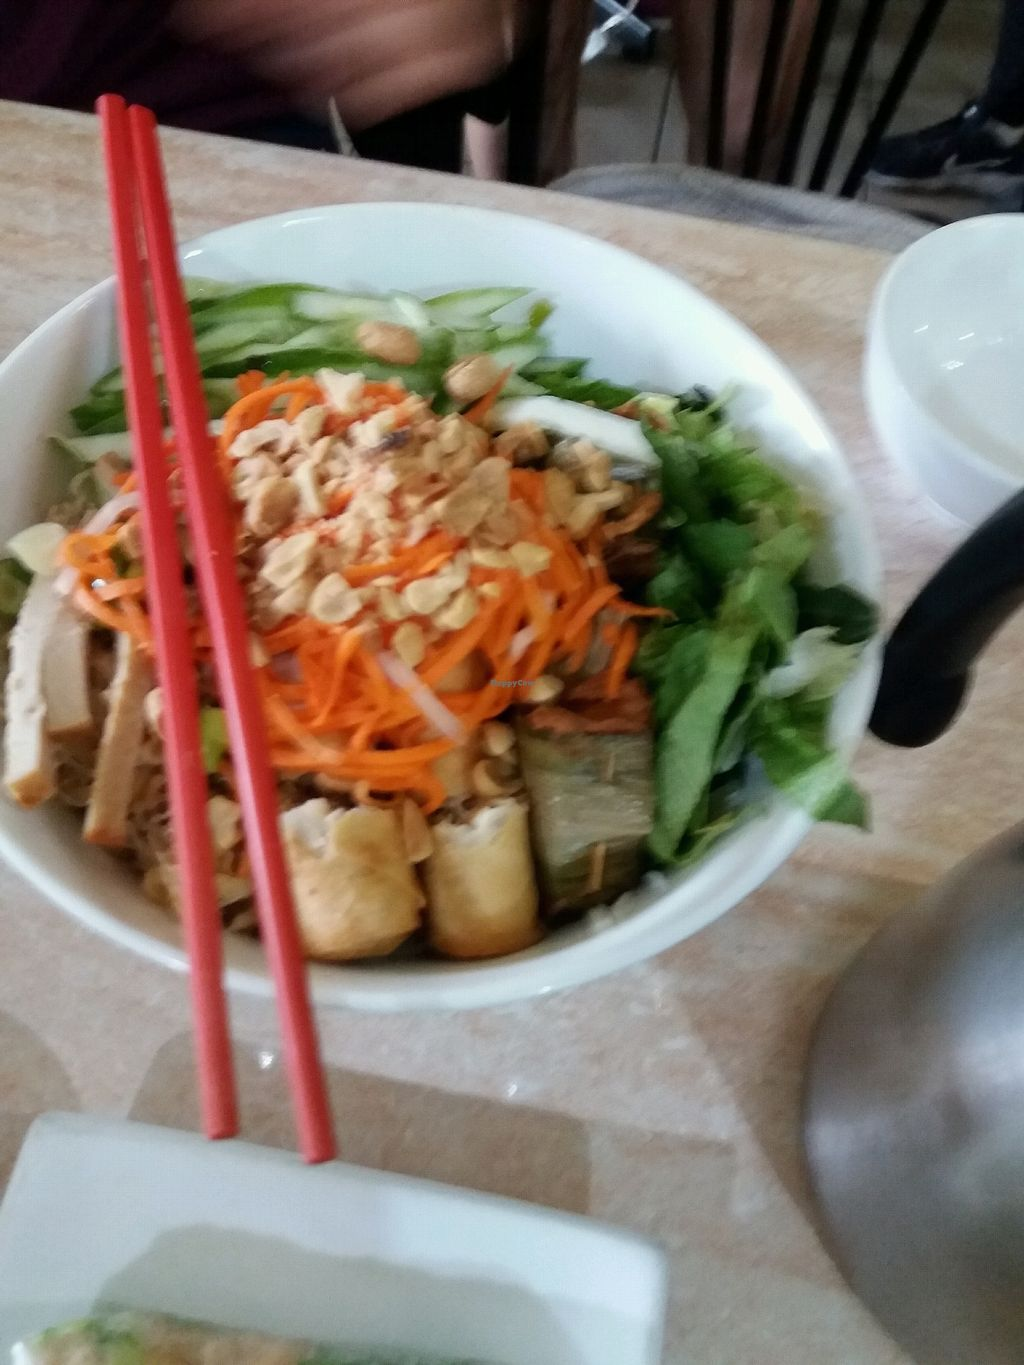 """Photo of An Lac Vegan  by <a href=""""/members/profile/veganvirtues"""">veganvirtues</a> <br/>some kind of pho <br/> December 26, 2017  - <a href='/contact/abuse/image/473/339108'>Report</a>"""